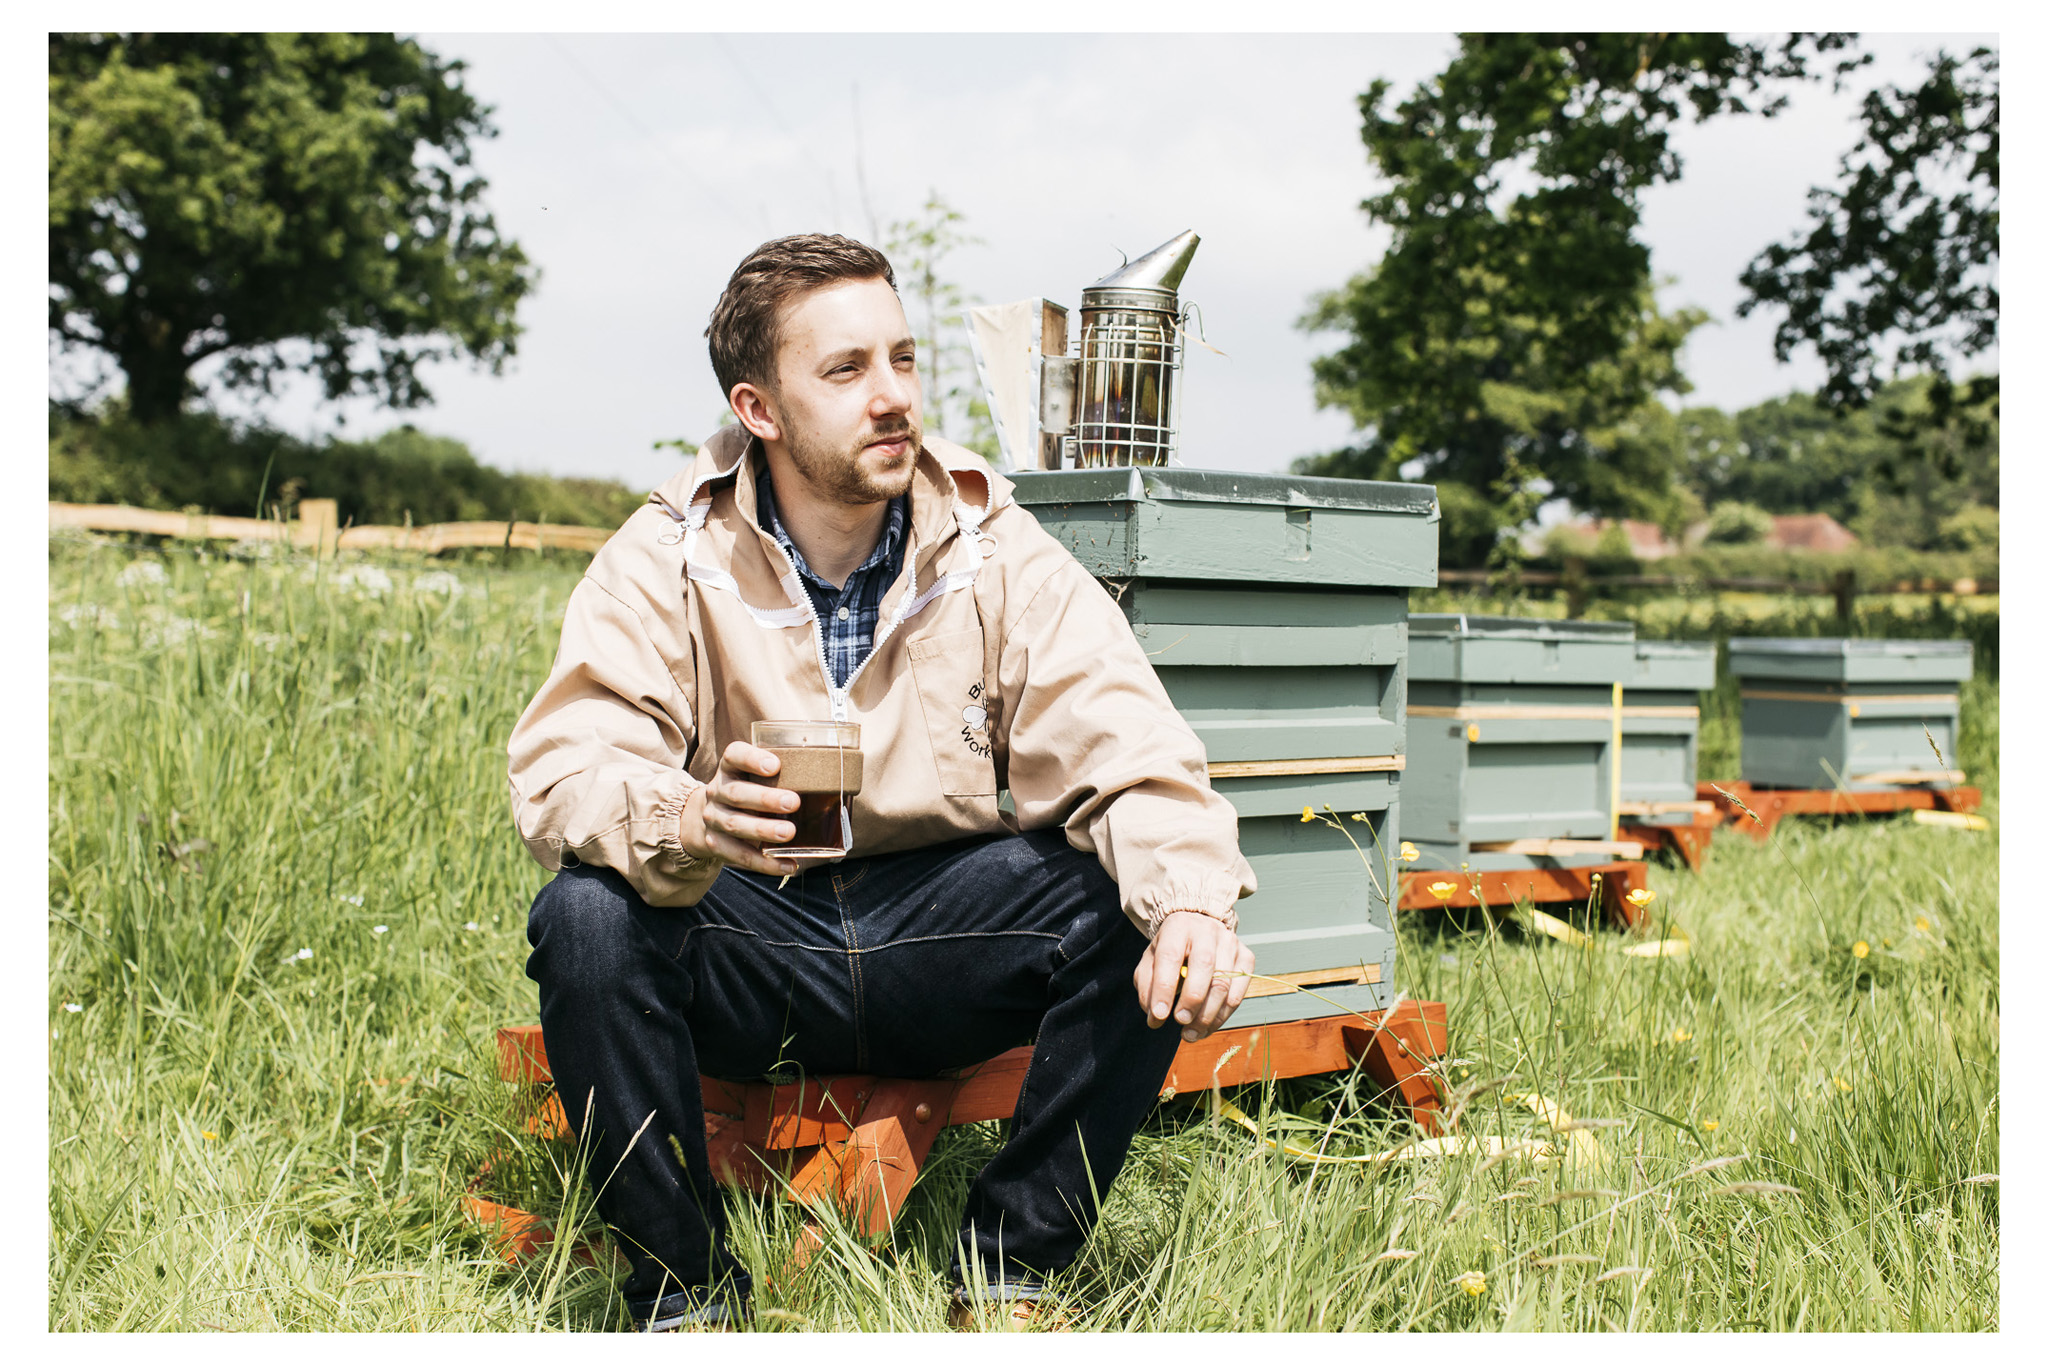 Lifestyle and portrait photography for Aecre Honey - an ethical brand based in Sussex working with independant producers nationwide.